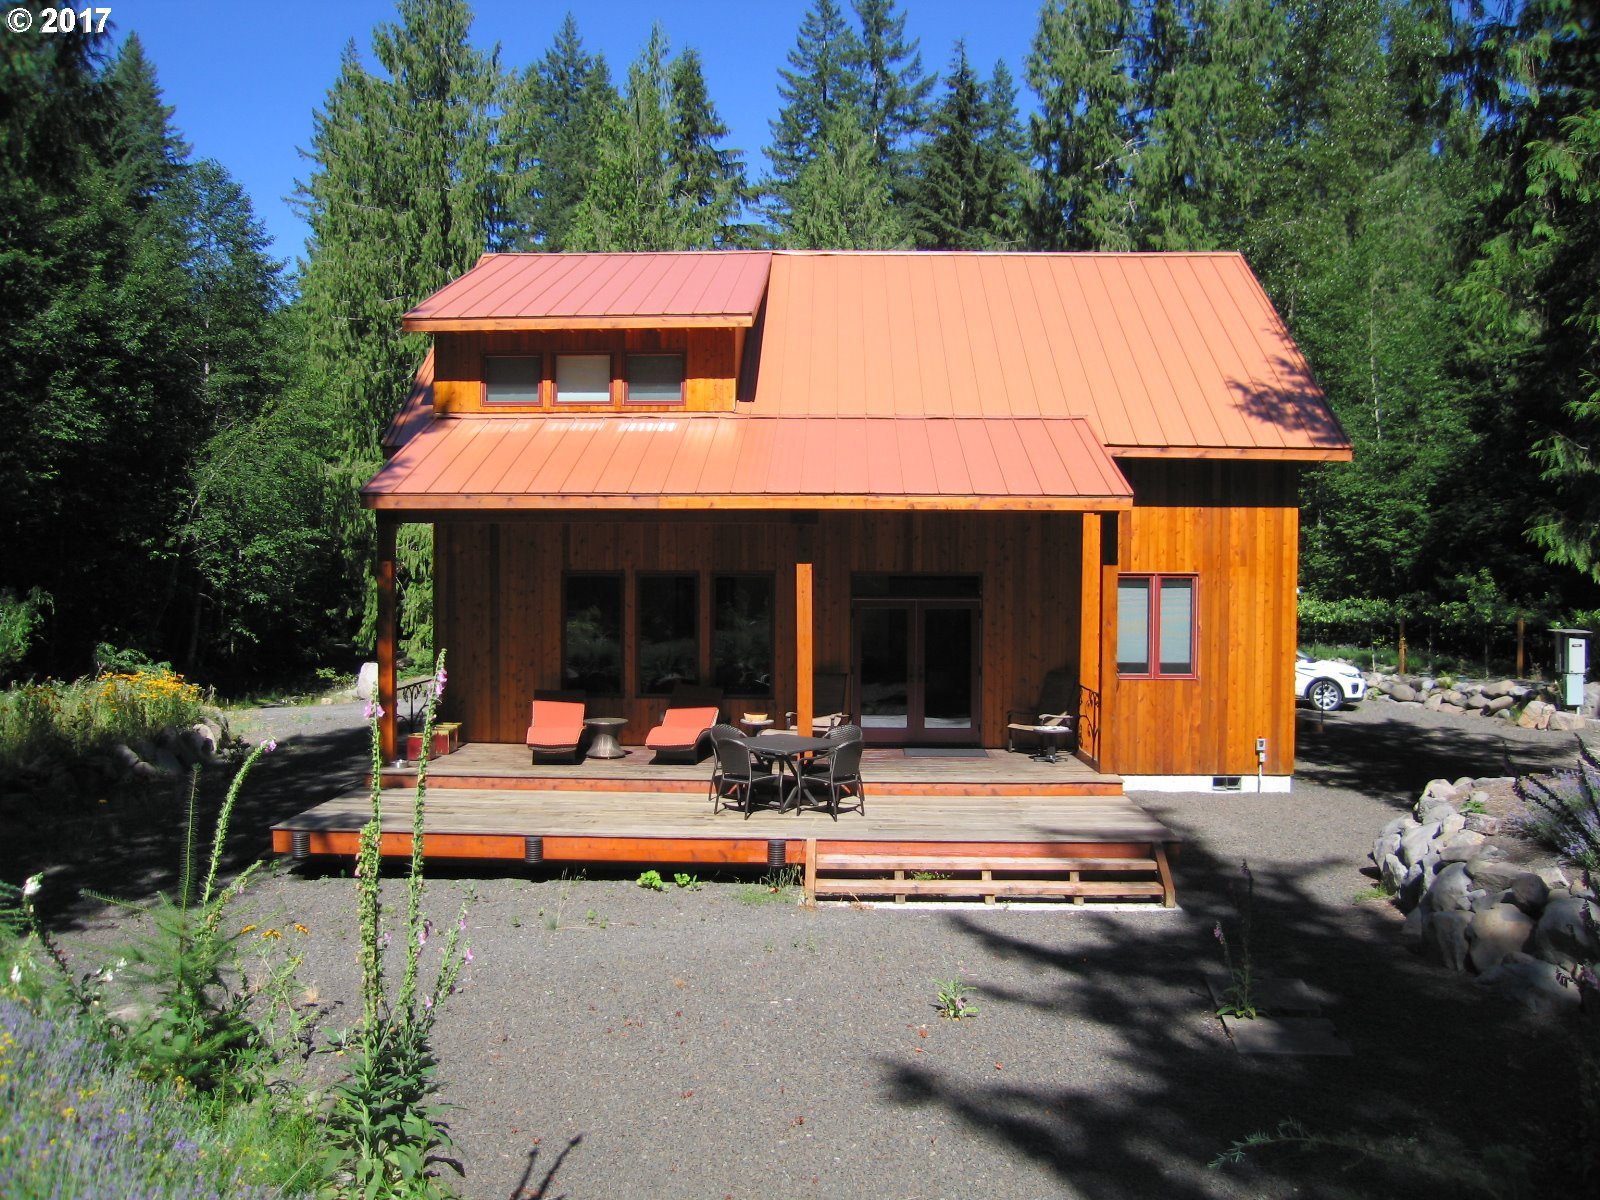 21102 E BRIARWOOD RD, Rhododendron, OR 97049